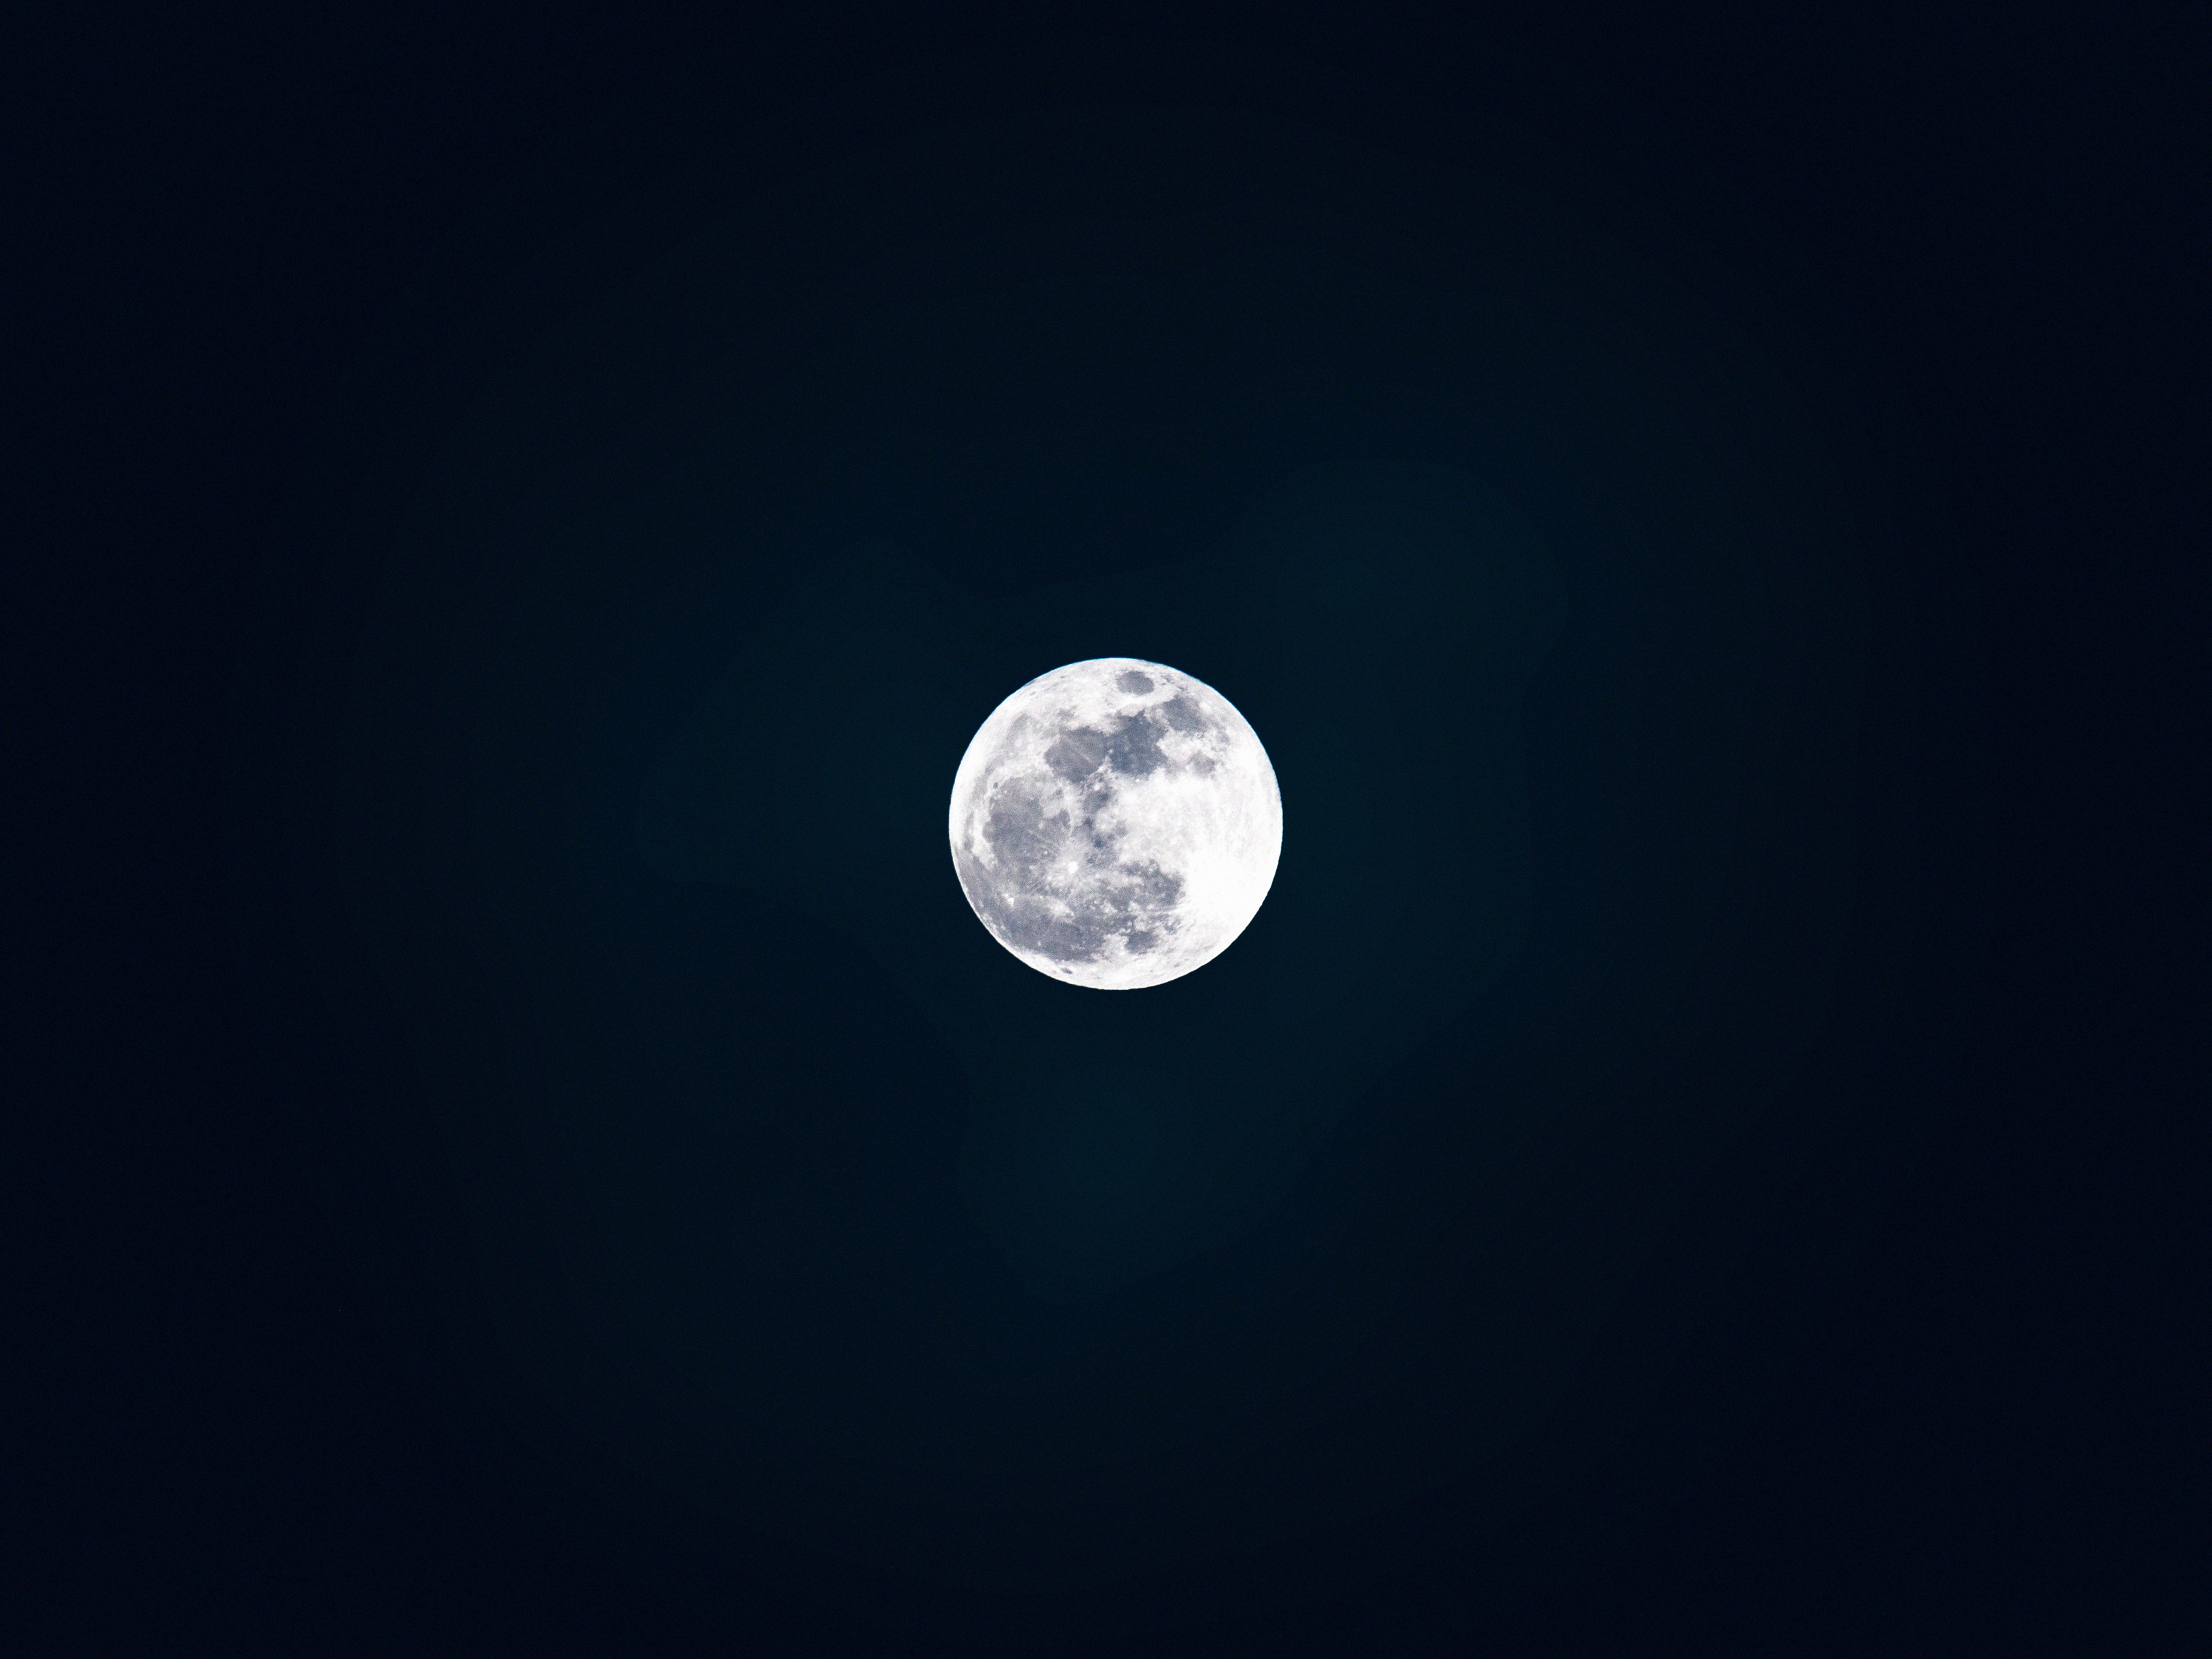 146902 Screensavers and Wallpapers Moon for phone. Download Moon, Full Moon, Night, Satellite, Dark, Bw, Chb, Universe pictures for free